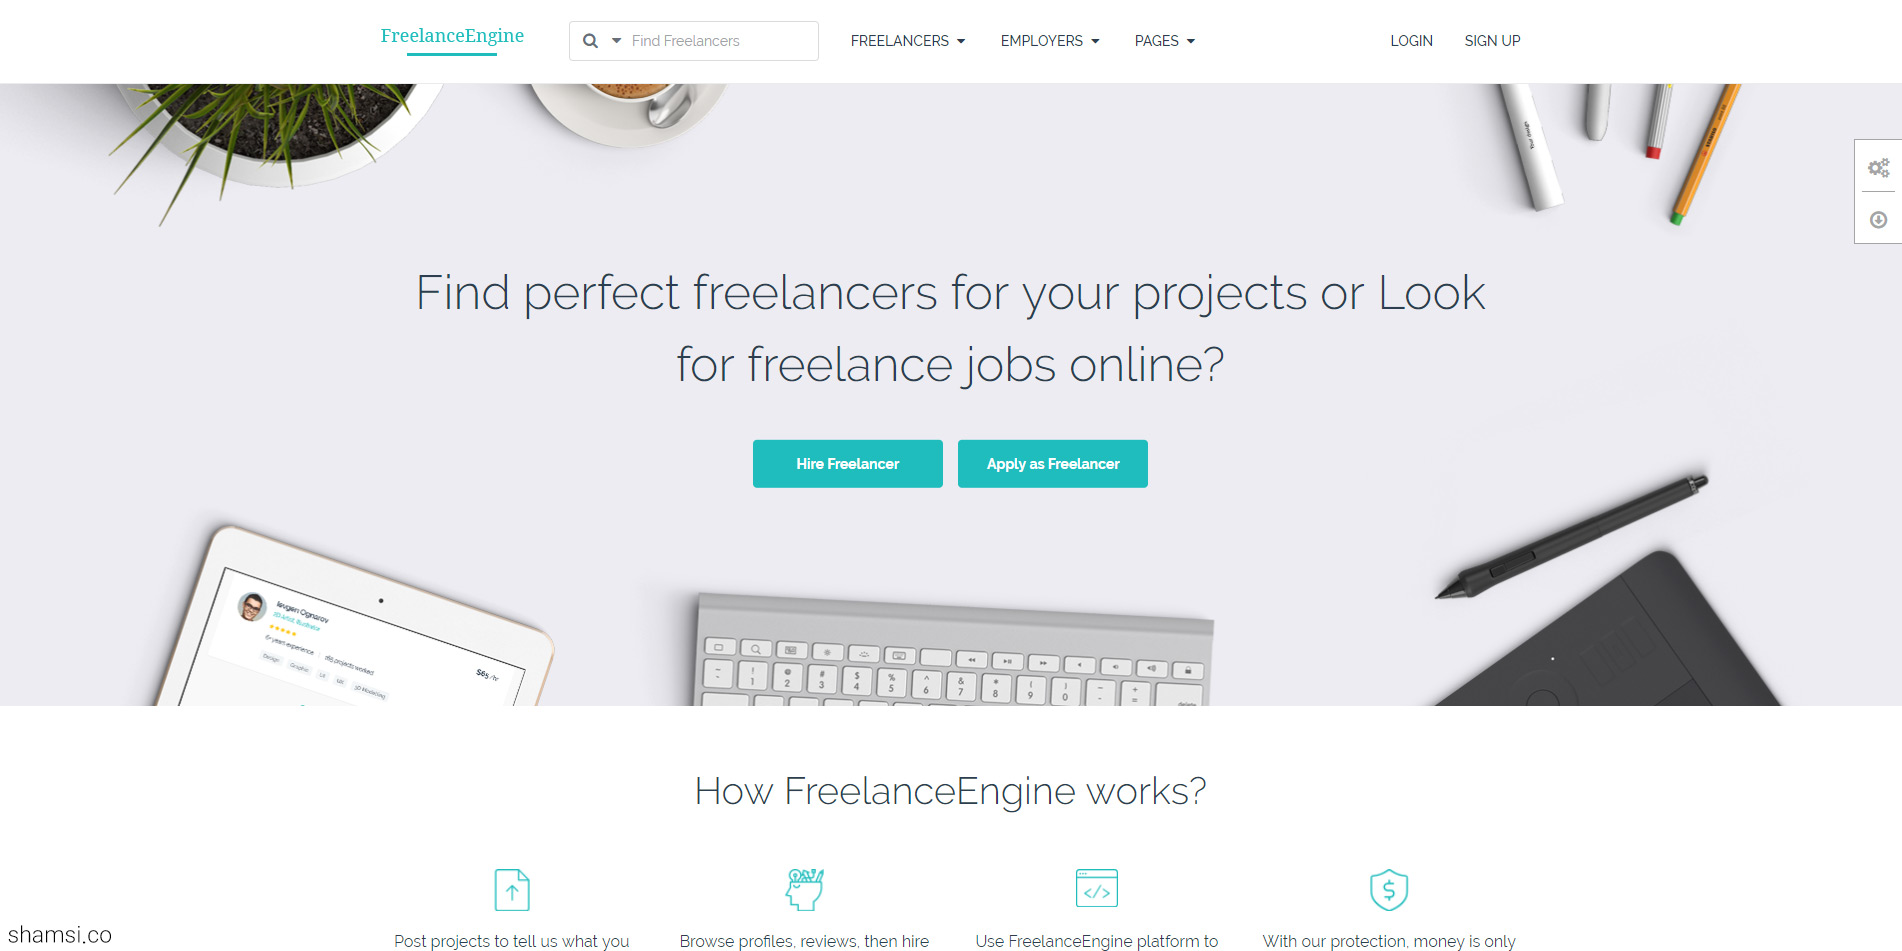 قالب FreelanceEngine فریلنس انجین